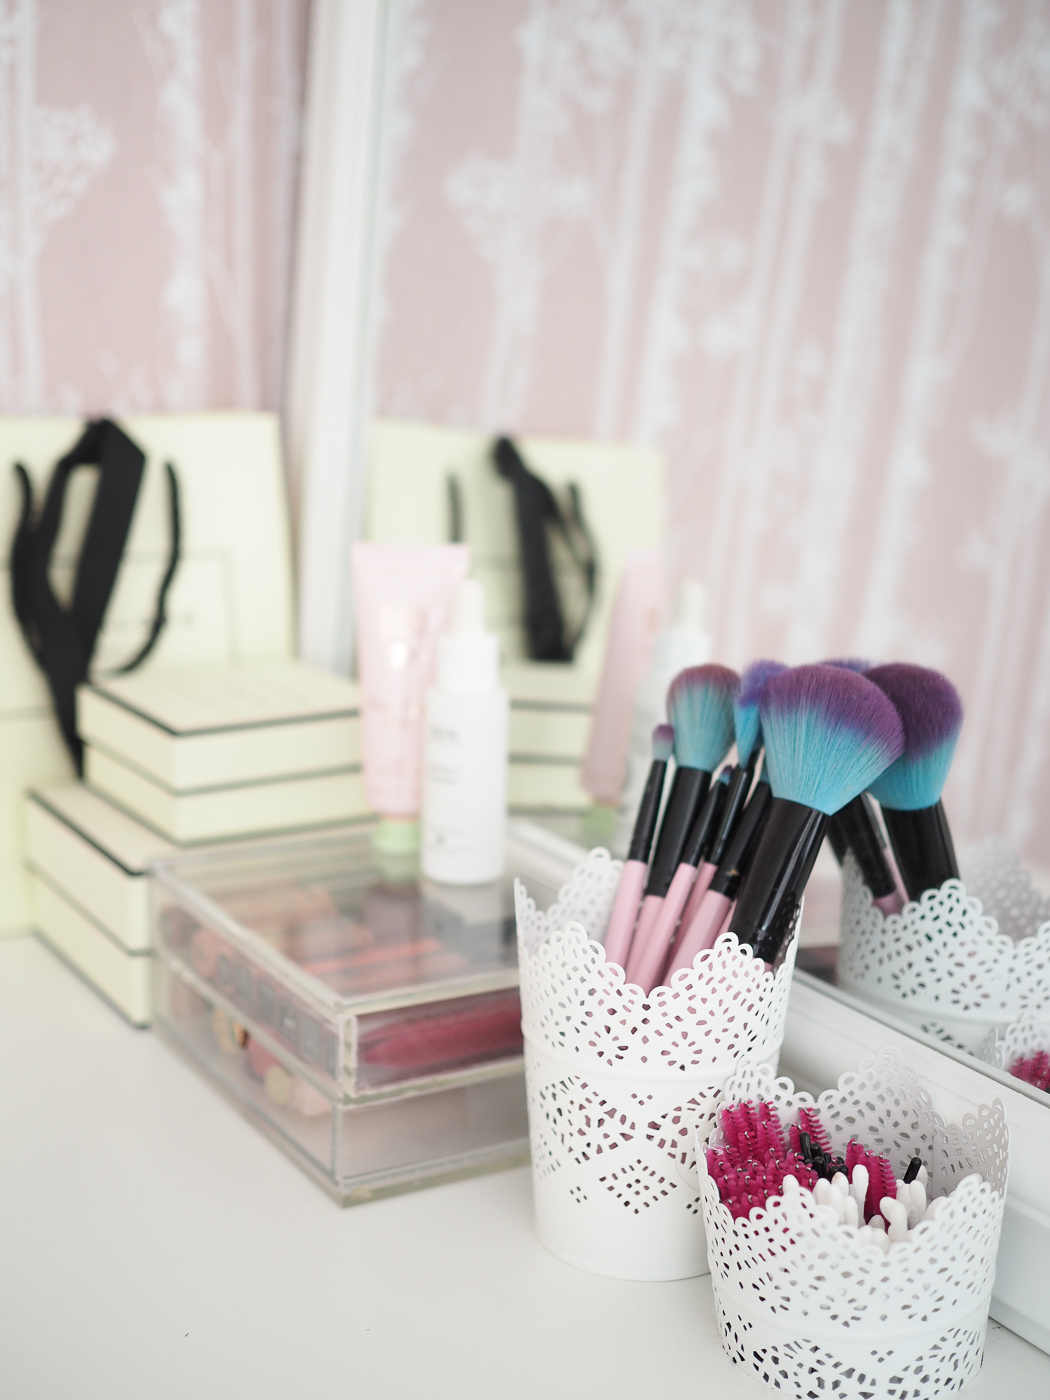 ikea dressing table with makeup brushes and jo malone